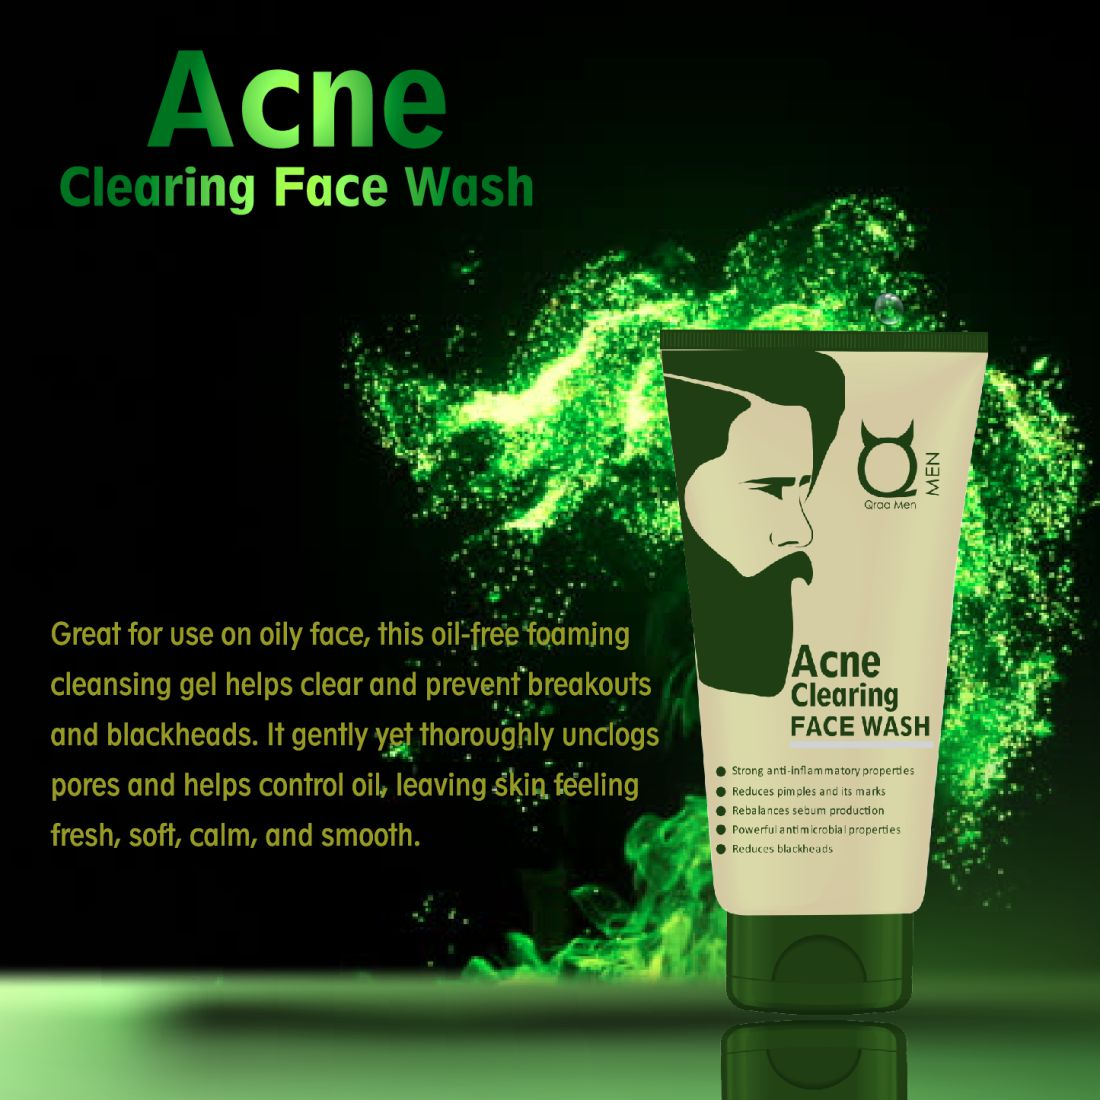 Acne Clearing Face Wash 100g